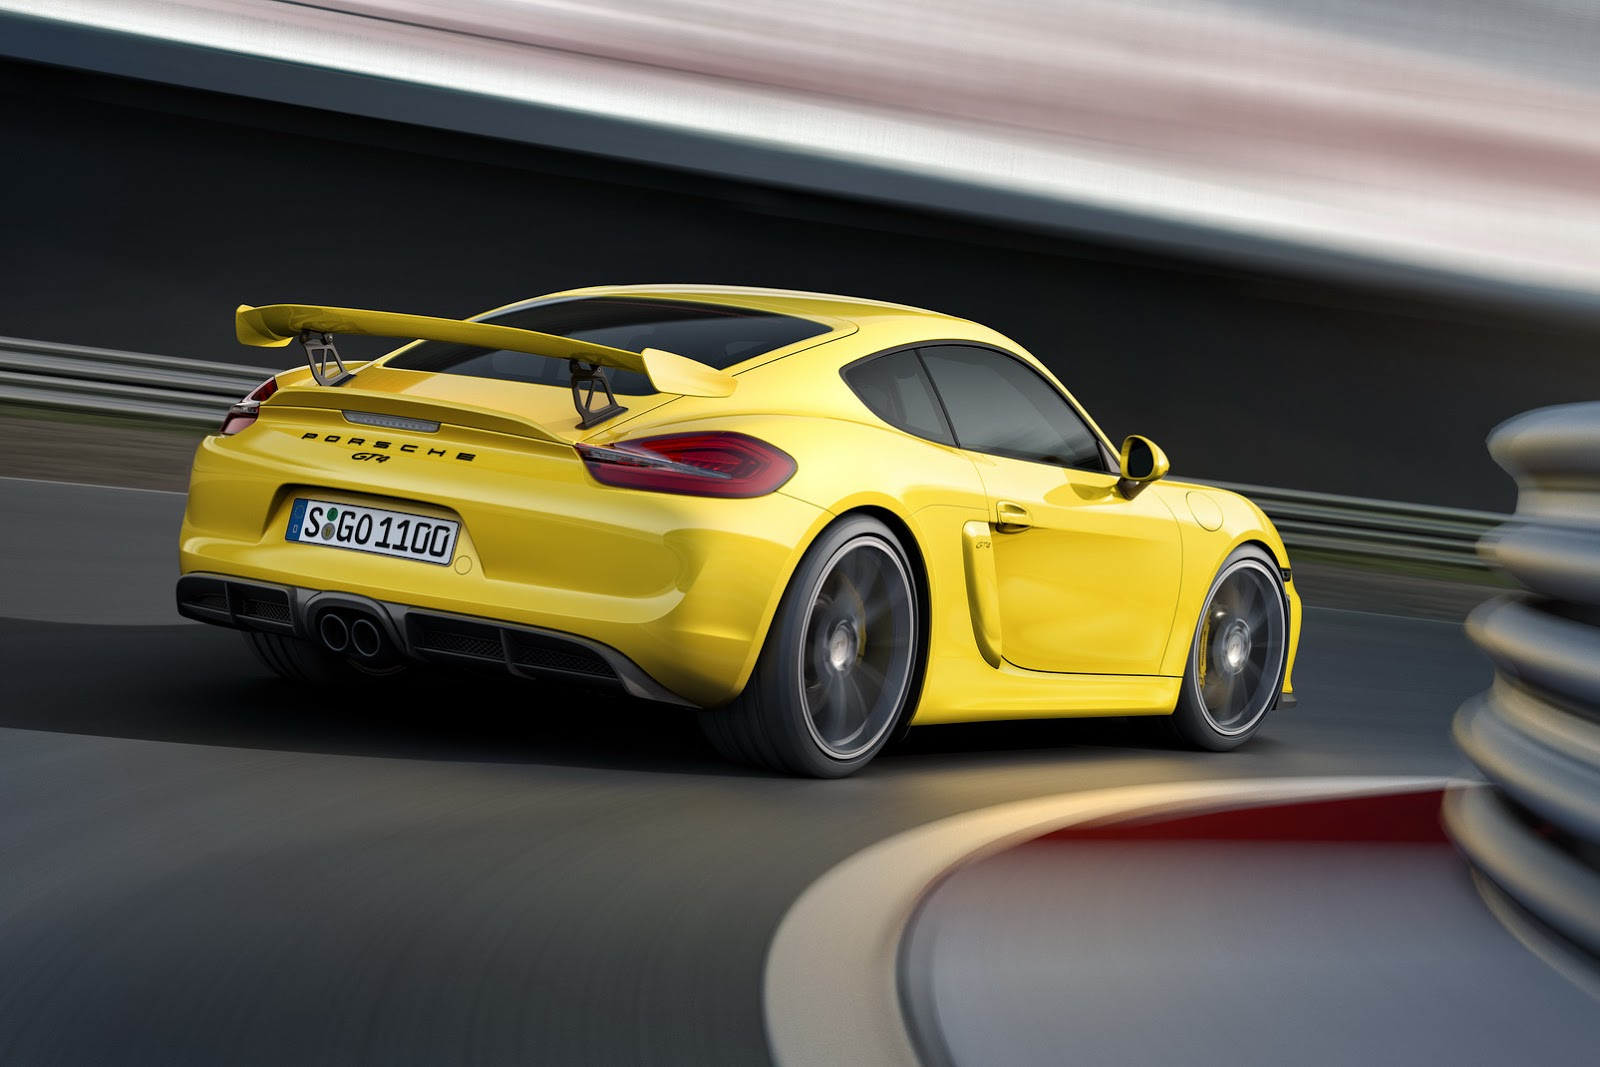 porsche dealership hints at cayman gt4 rs with 4.0l engine